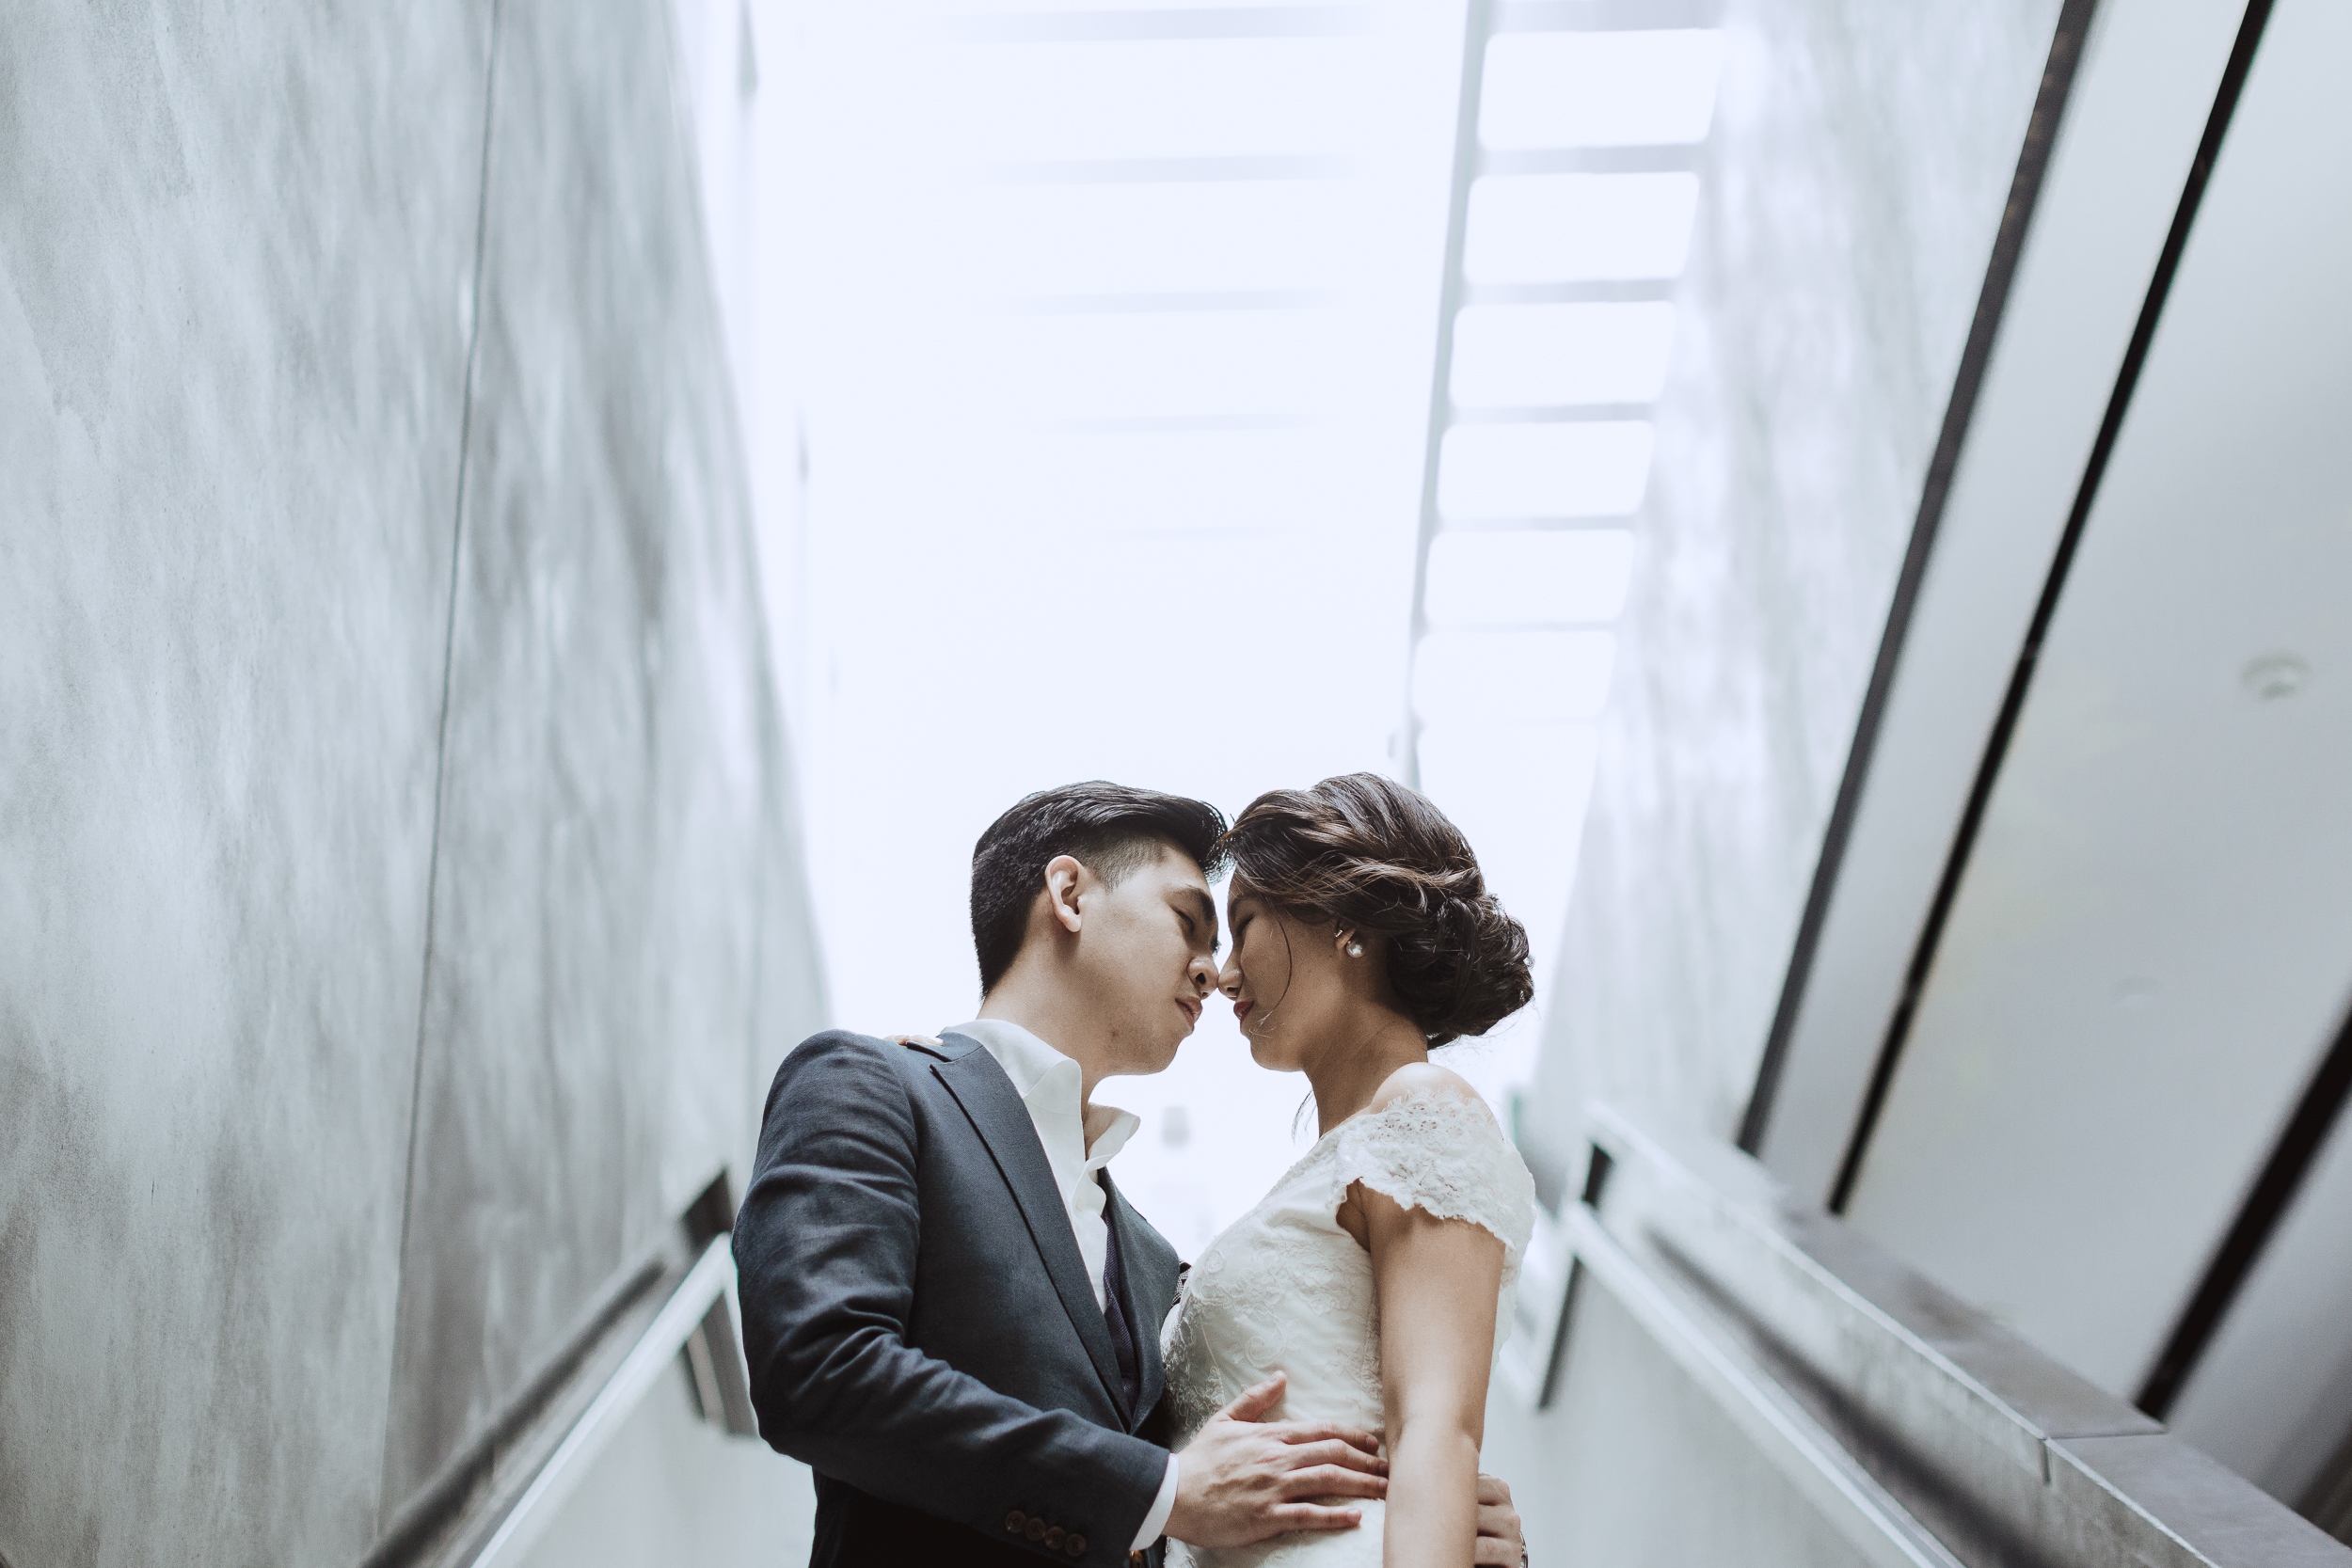 Singapore+Pre+Wedding+Photographer+Jeremiah+Christina-0018.jpg